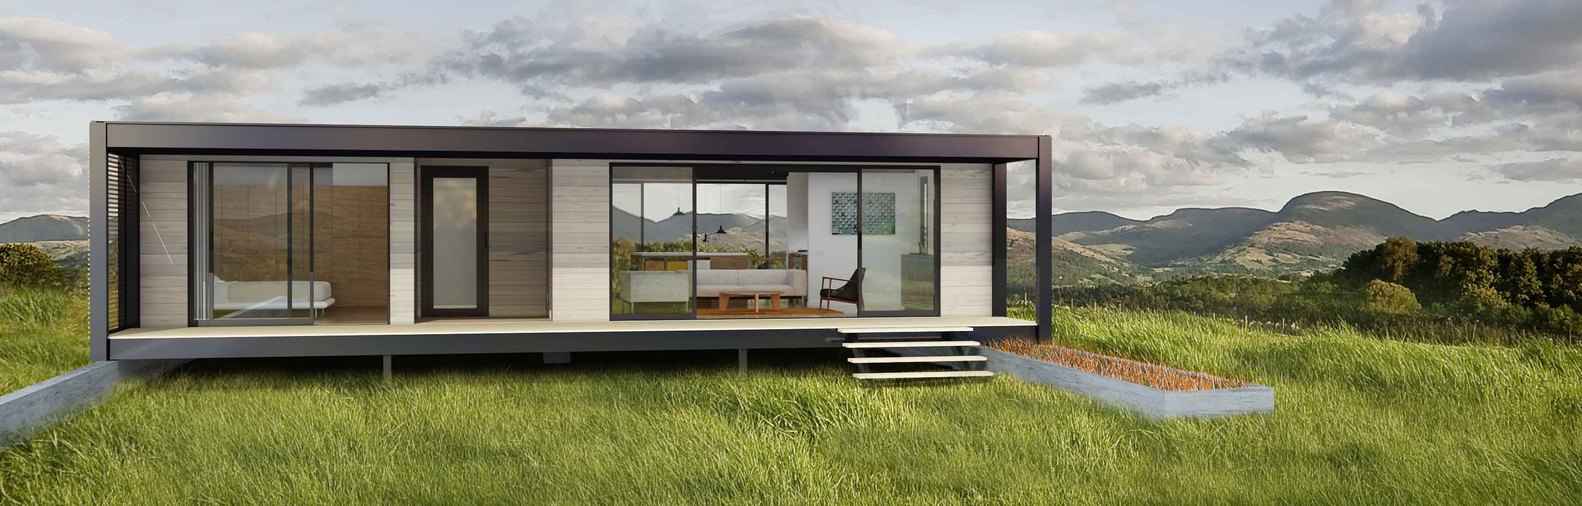 Connecthomes offers affordable modern sustainable homes